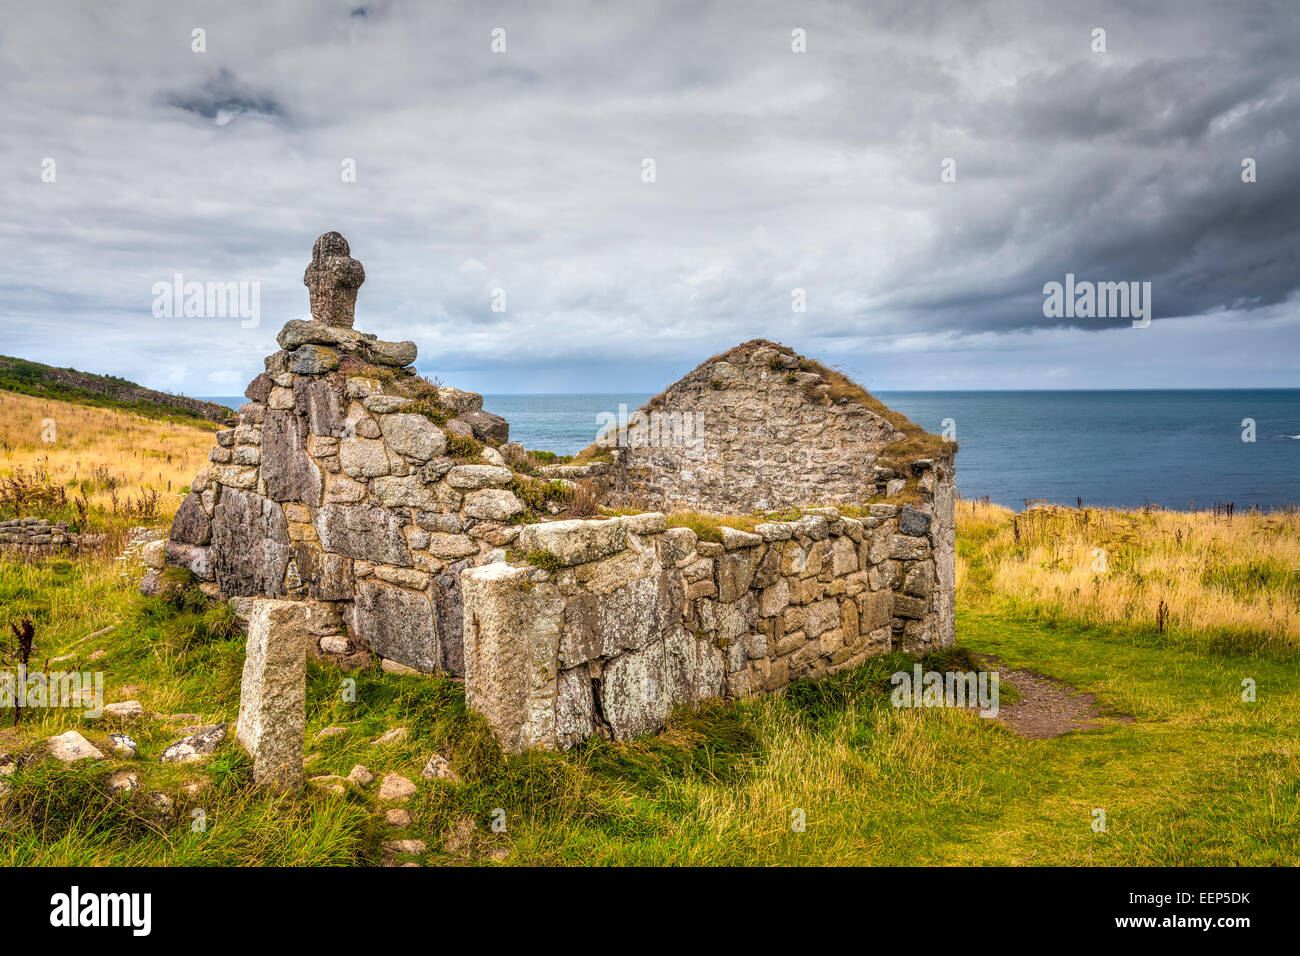 Ruins of St Helens Oratory an early Christian structure at Cape Cornwall near St Just Cornwall England UK Europe - Stock Image